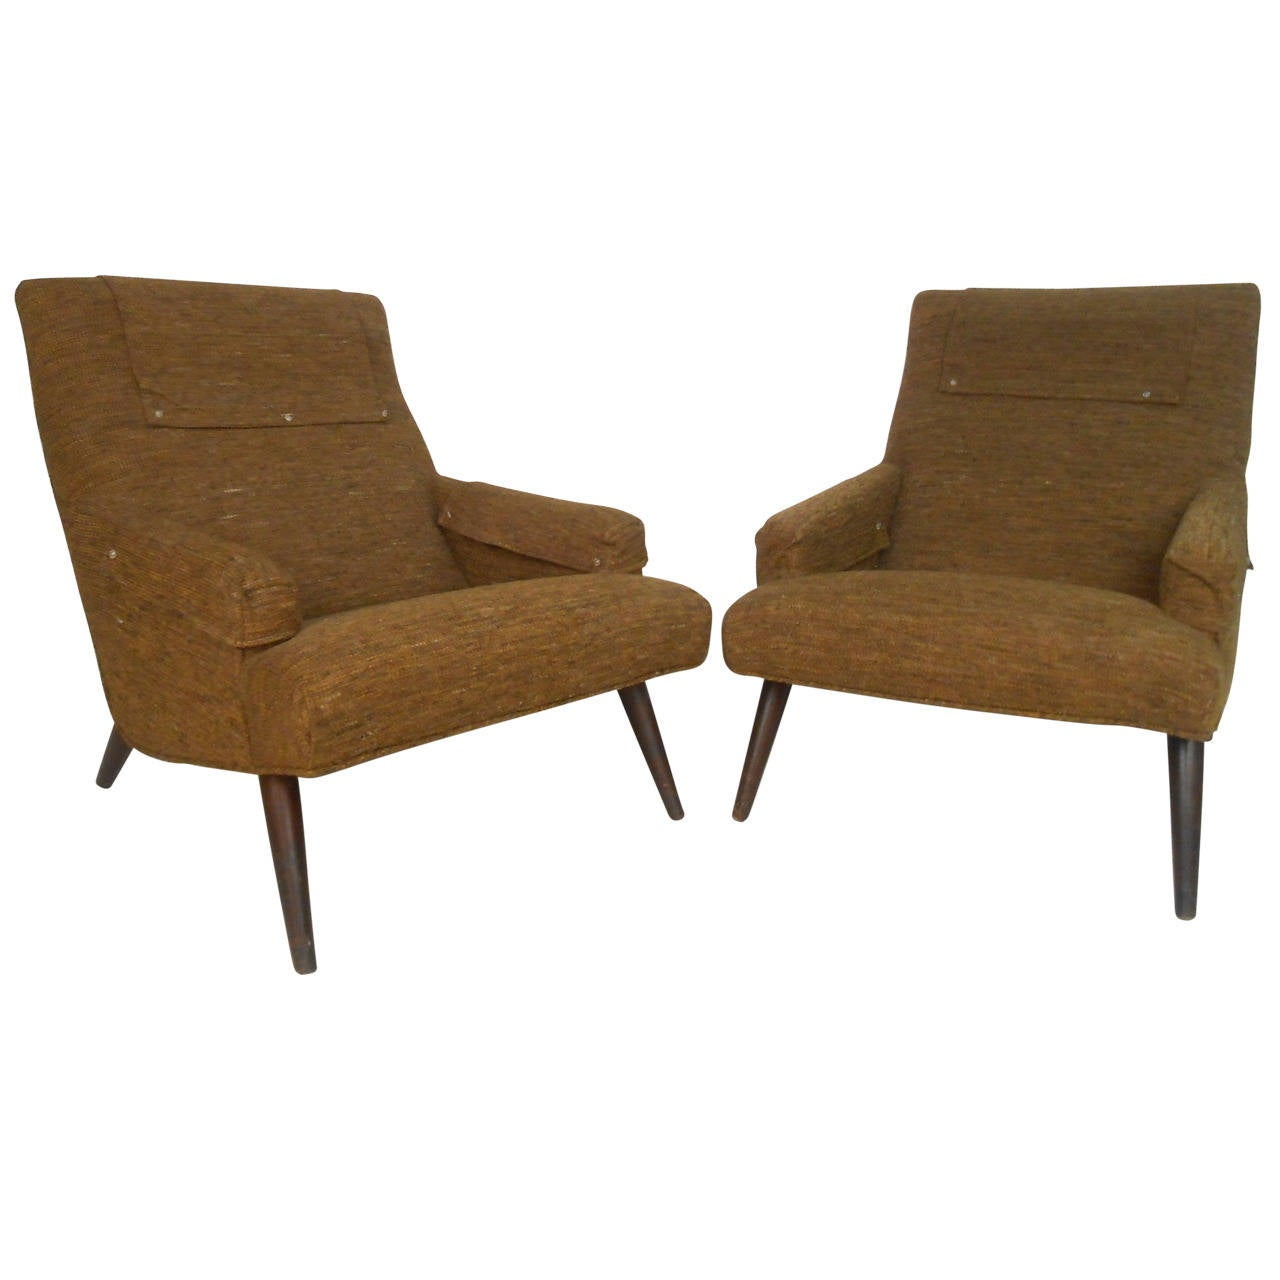 Pair Of Unique Mid Century Modern Lounge Chairs With Ottomans For